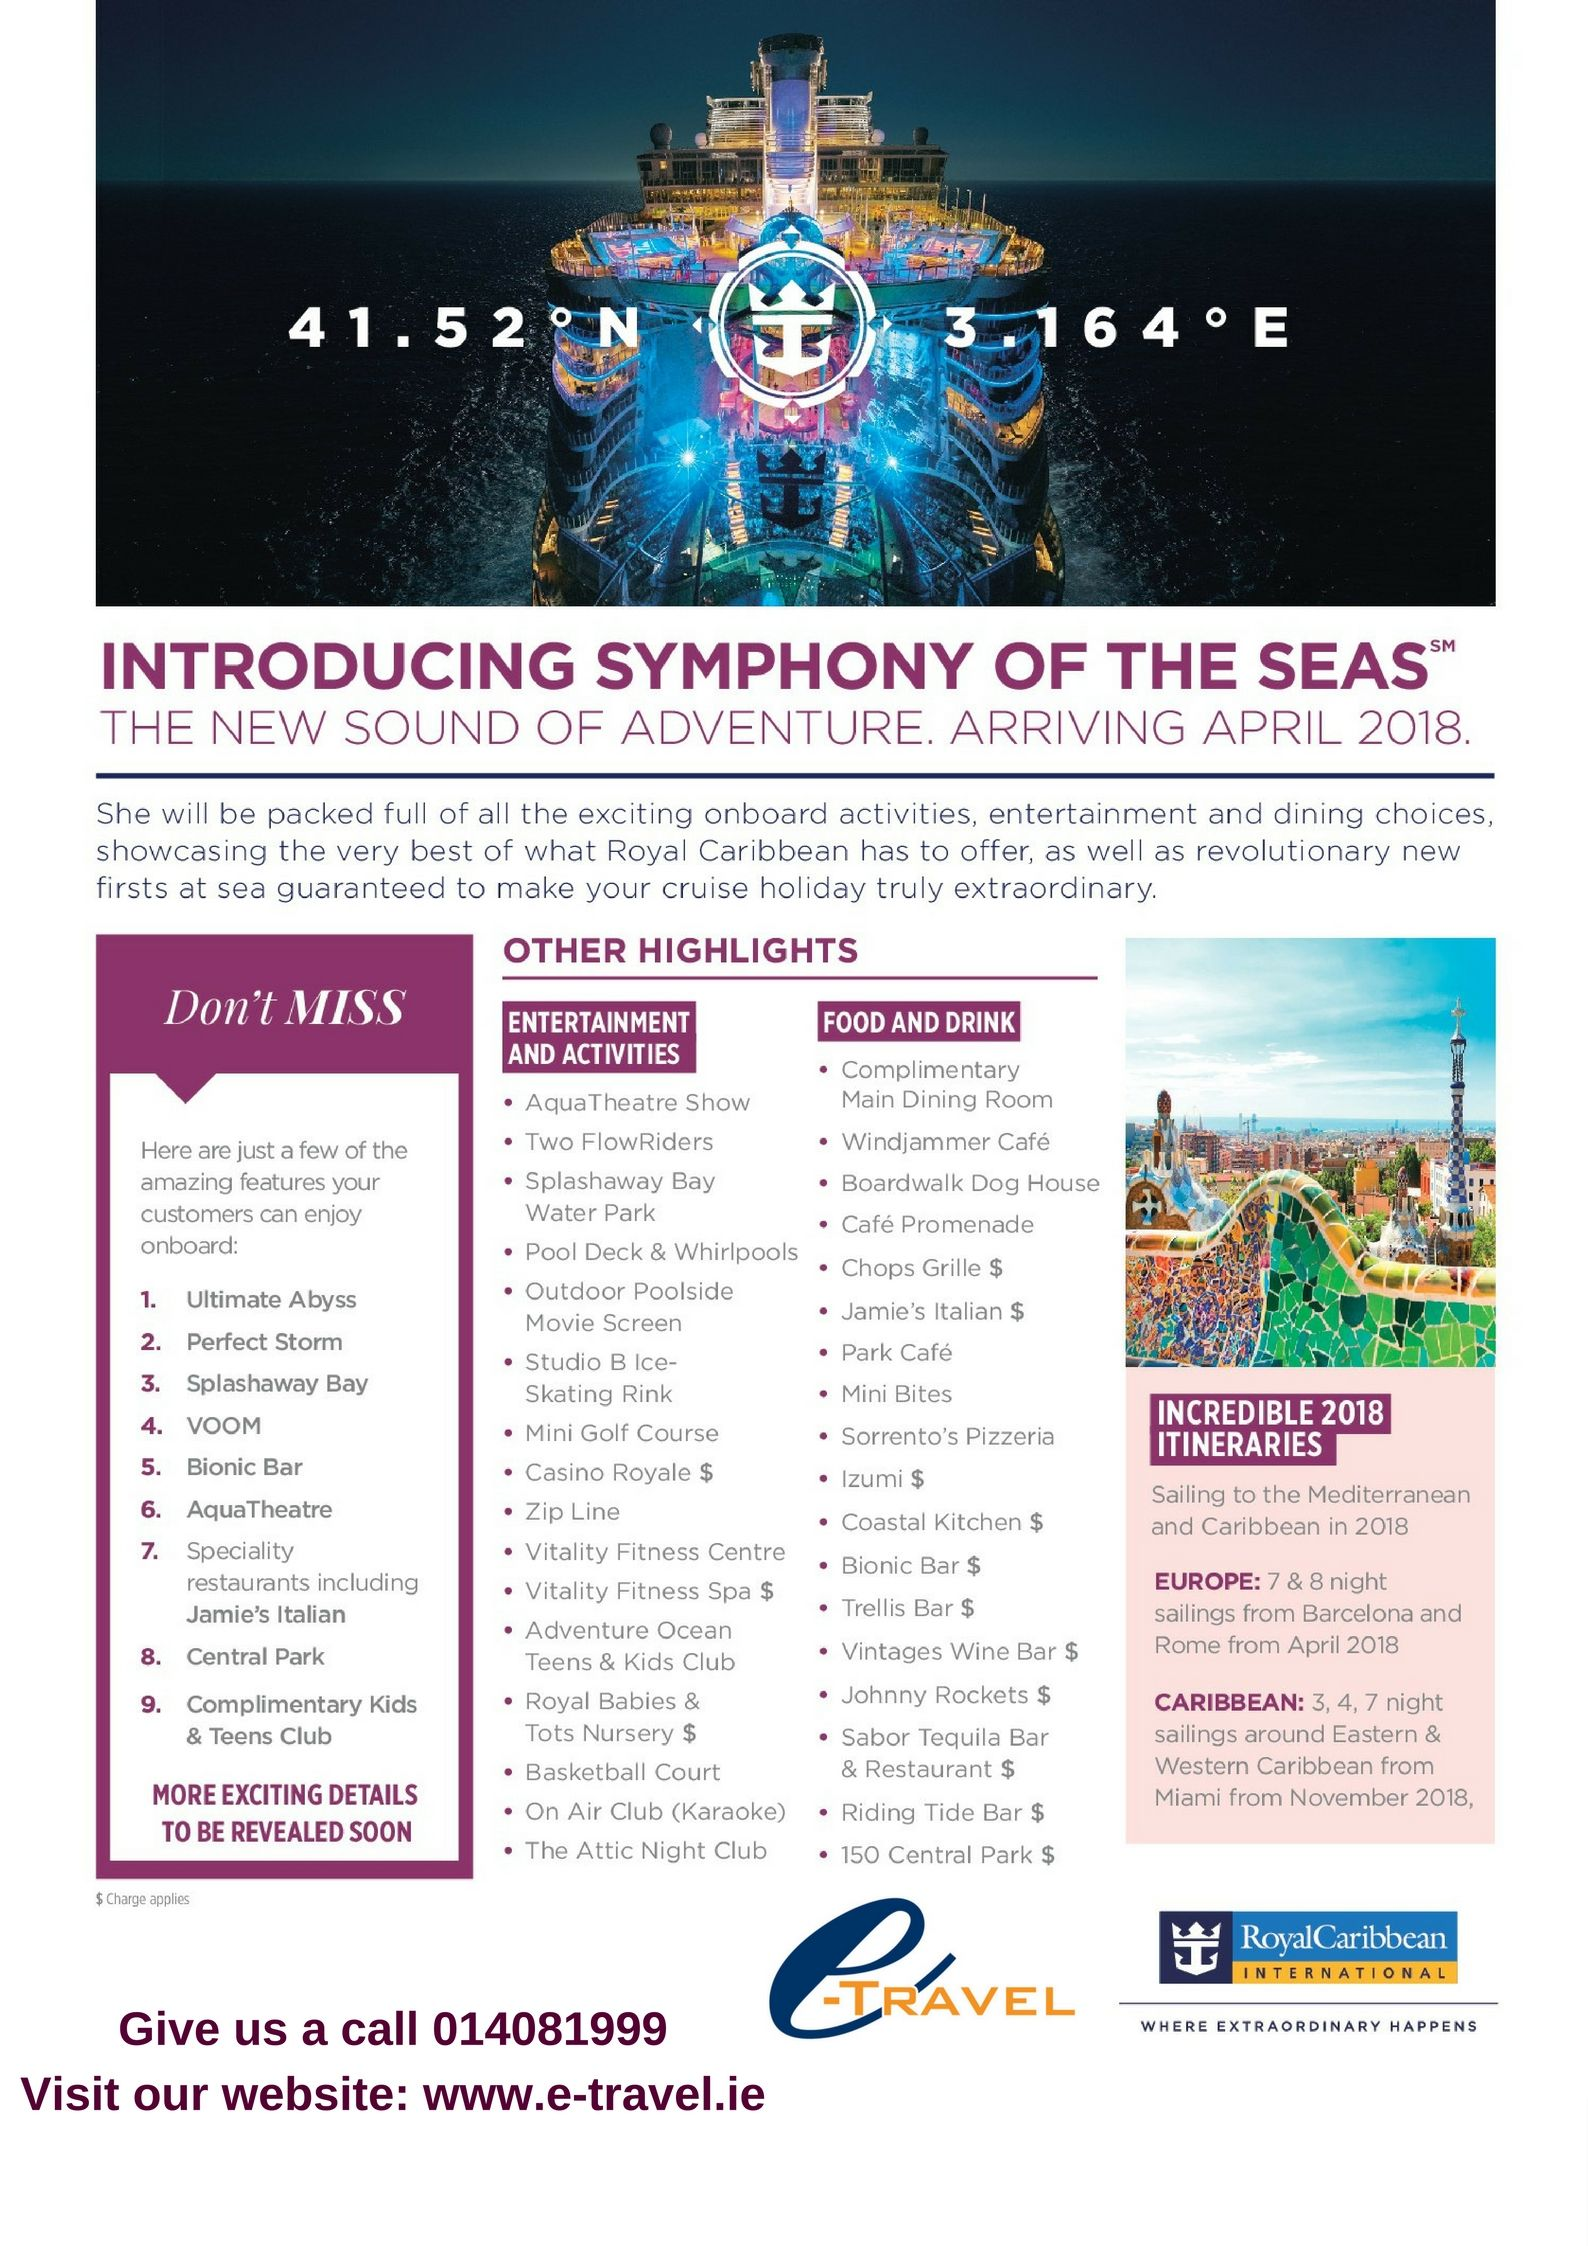 Introducing Symphony Of The Seas!